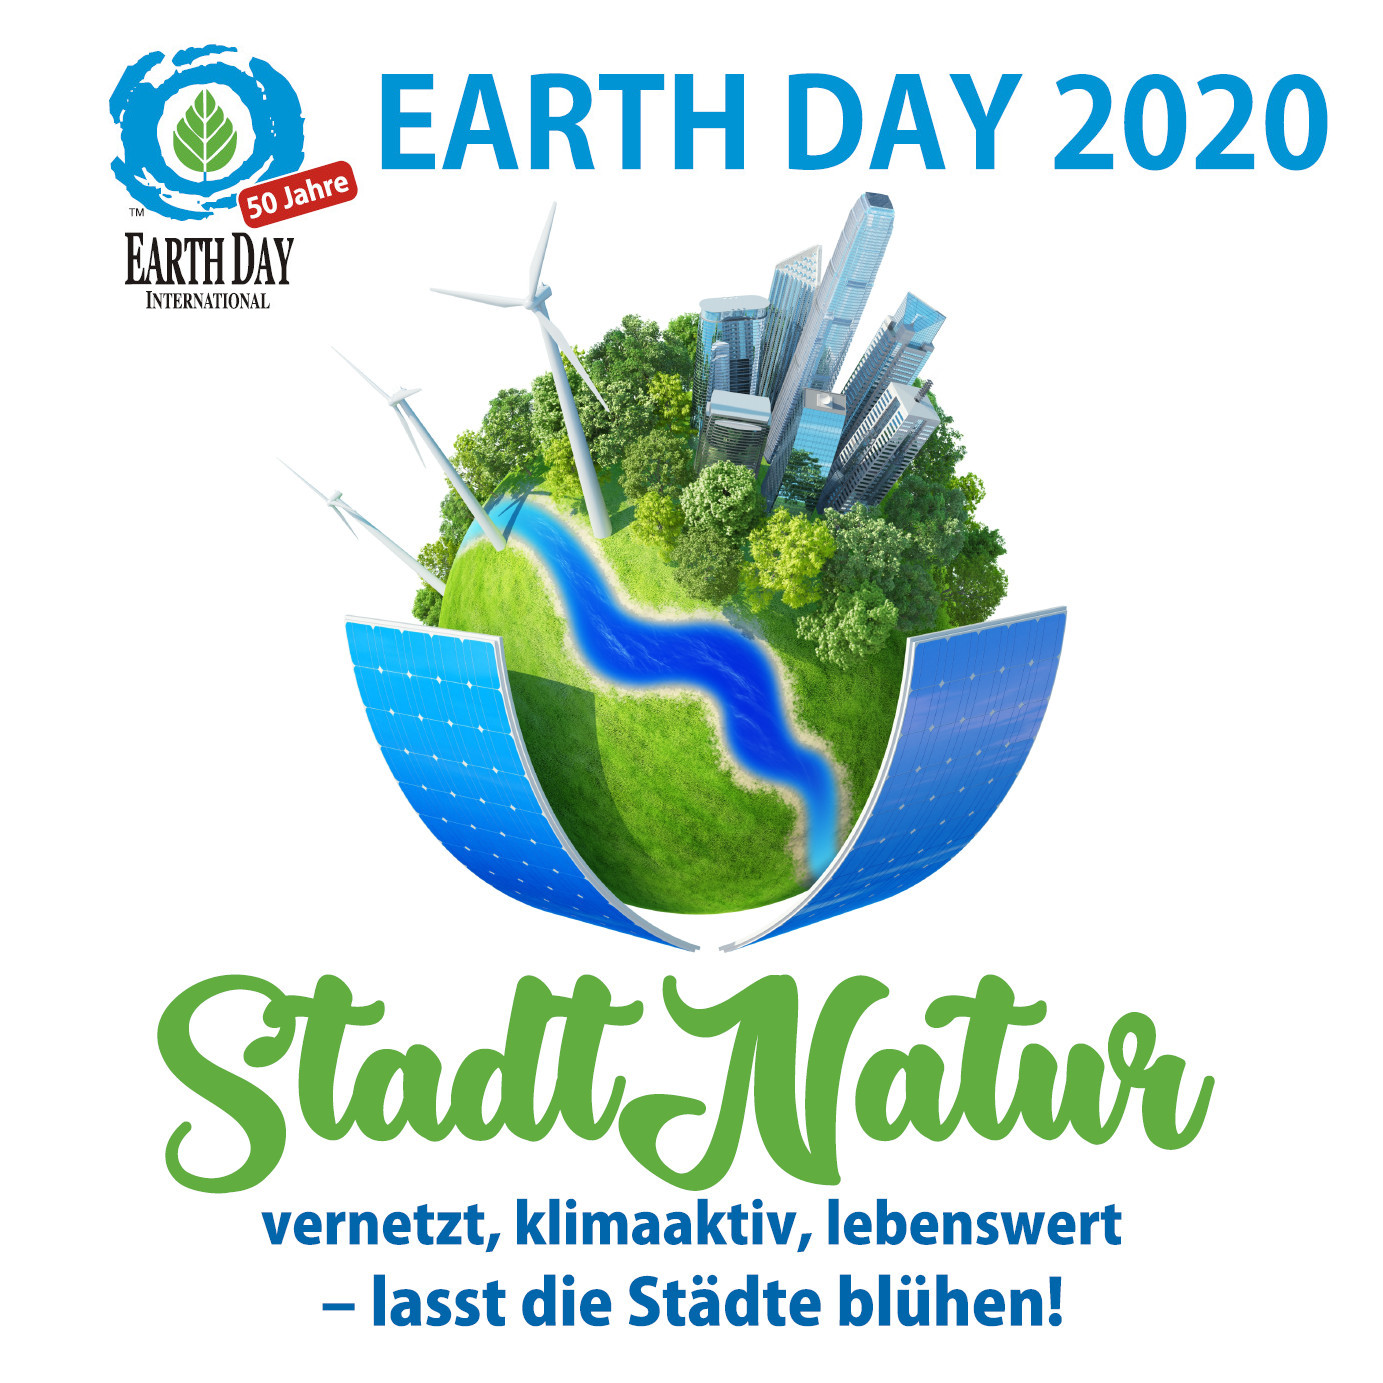 Earth Day 2020 am 22. April